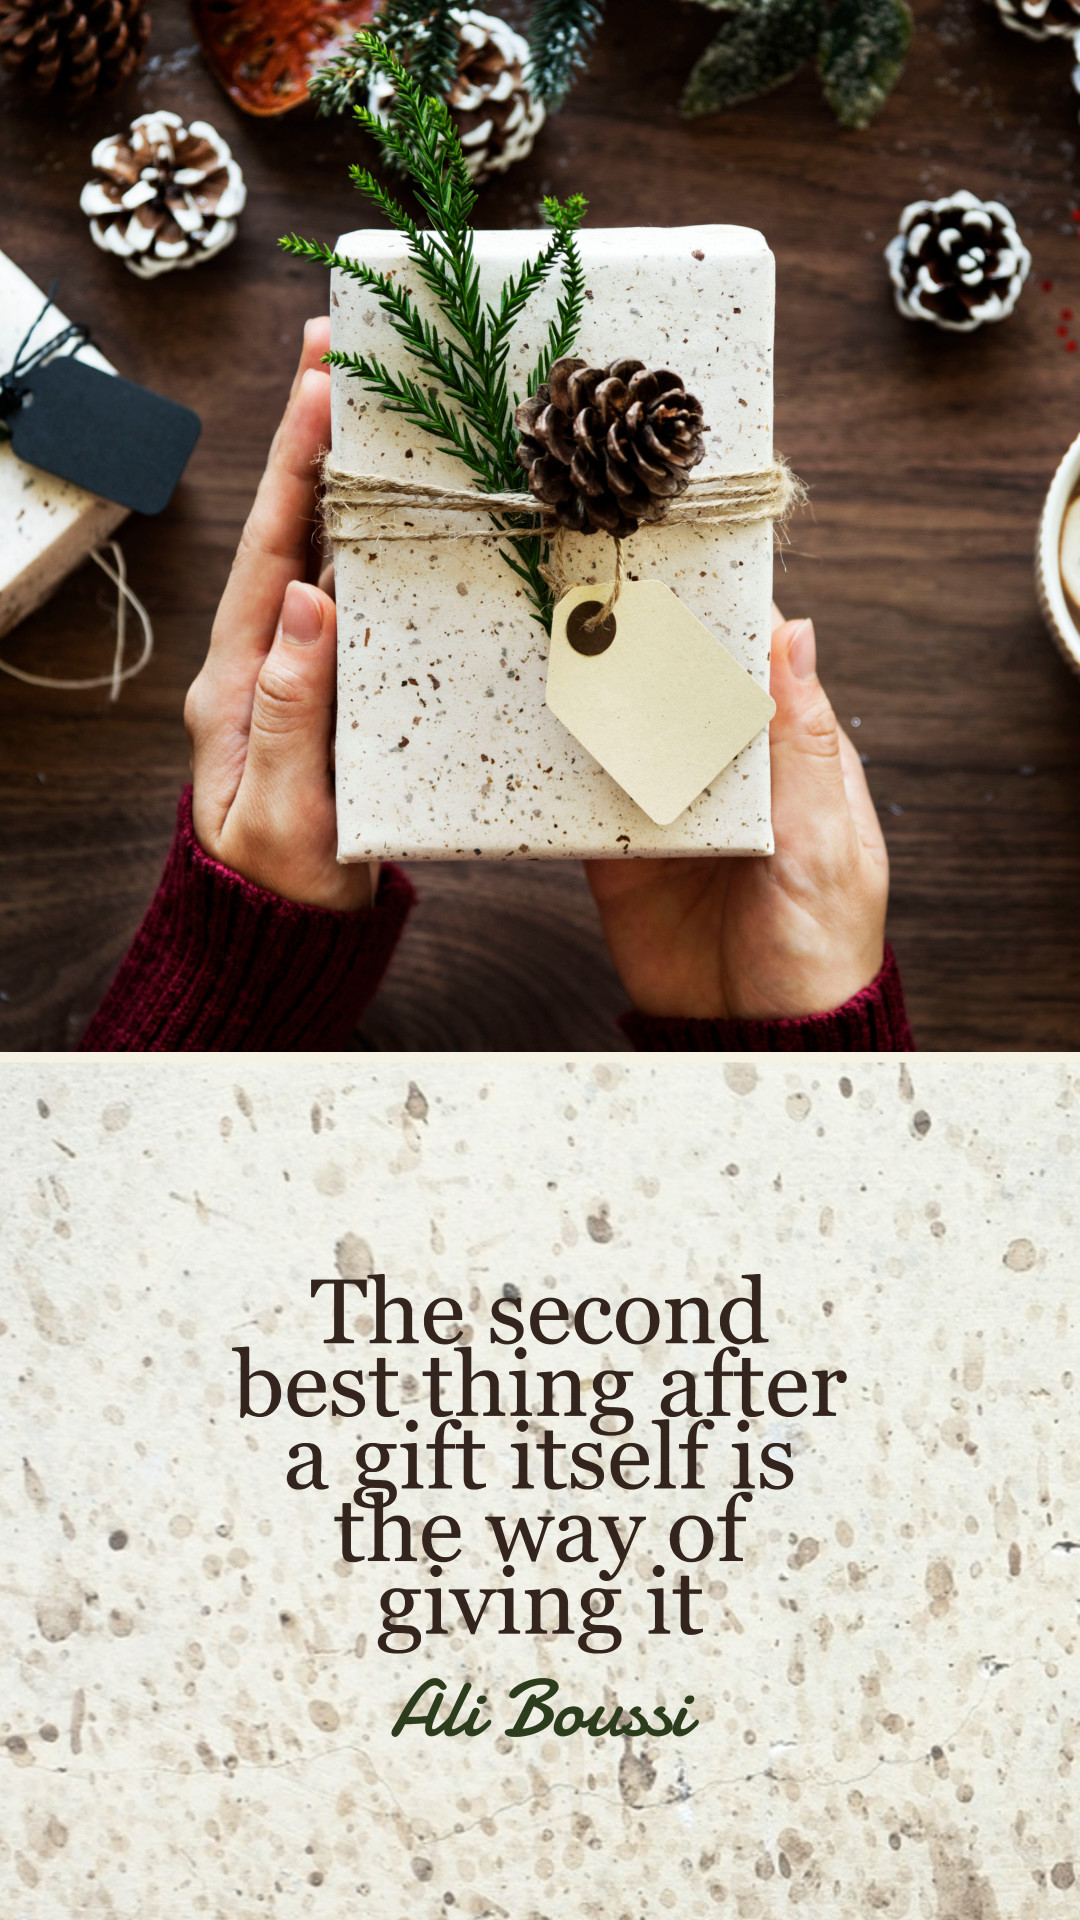 Gift of giving - quote